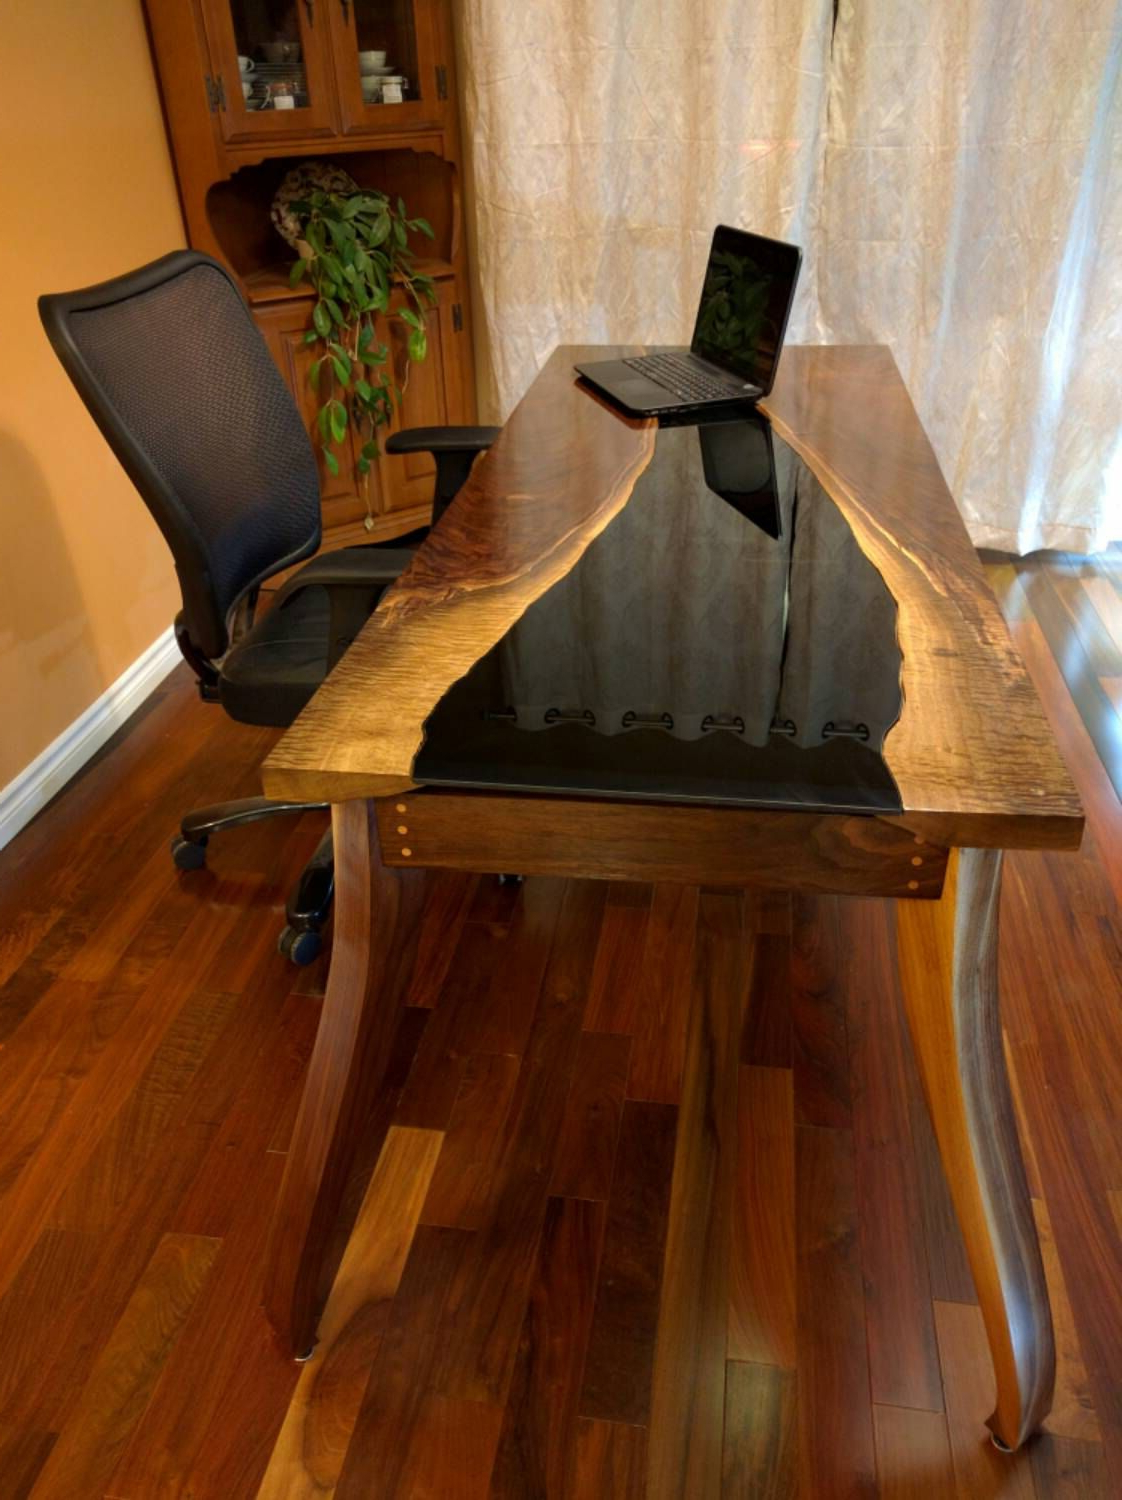 Walnut Finish Live Edge Wood Contemporary Dining Tables Intended For Popular Executive Desk Walnut Table Natural Live Edge Black Modern (View 19 of 25)